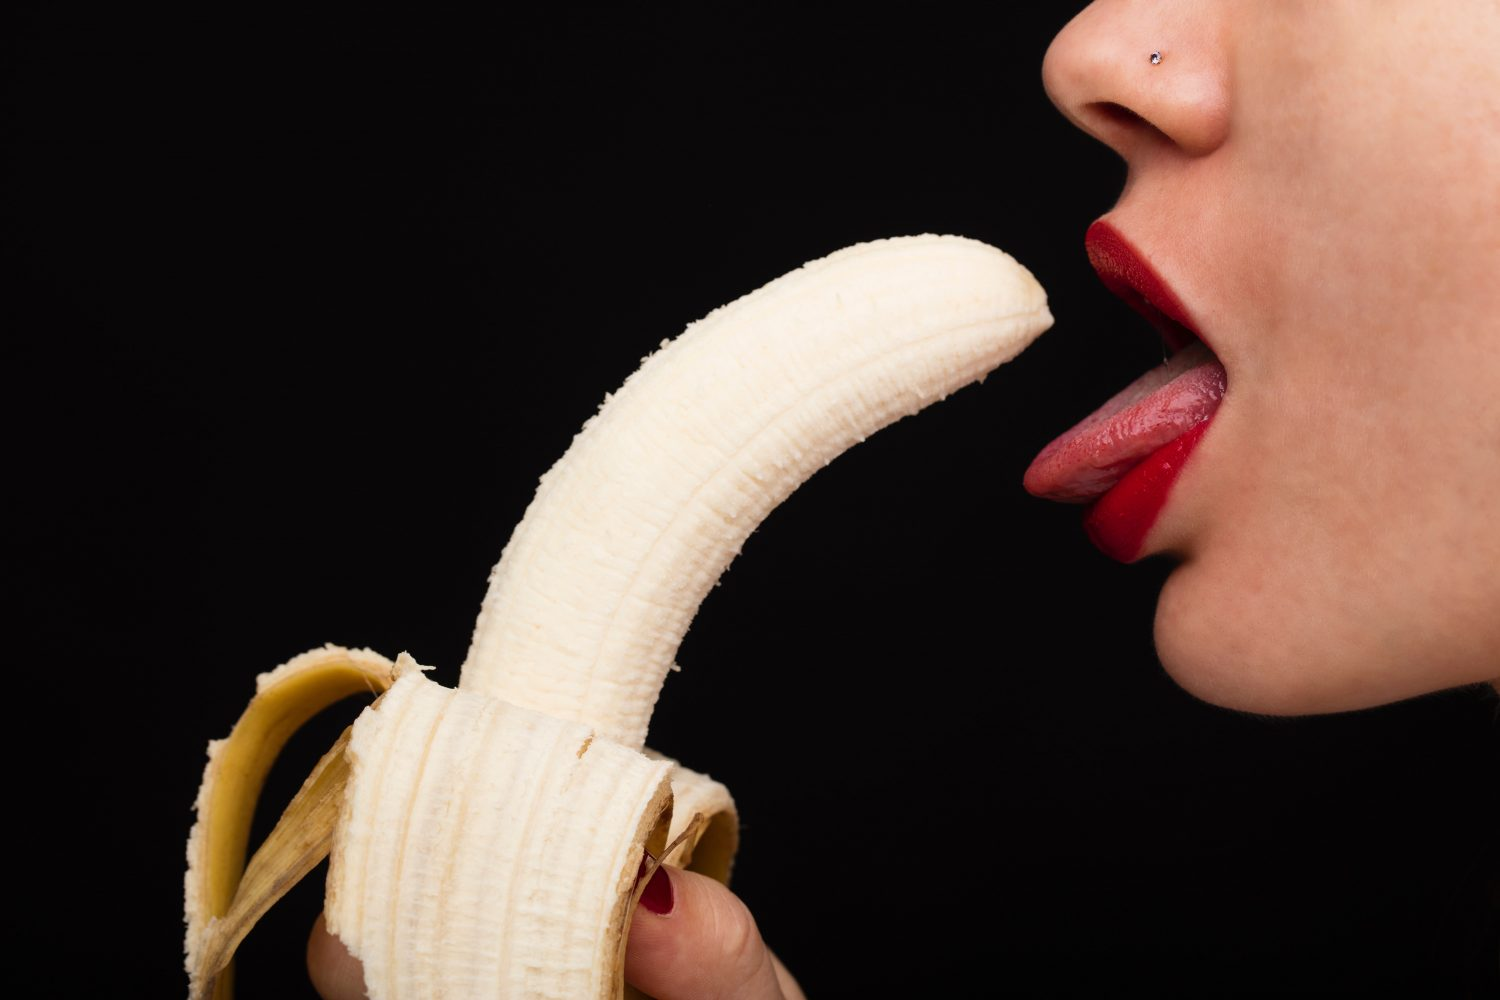 improve your blowjob game: ultimate guide on how to deep throat like a pro